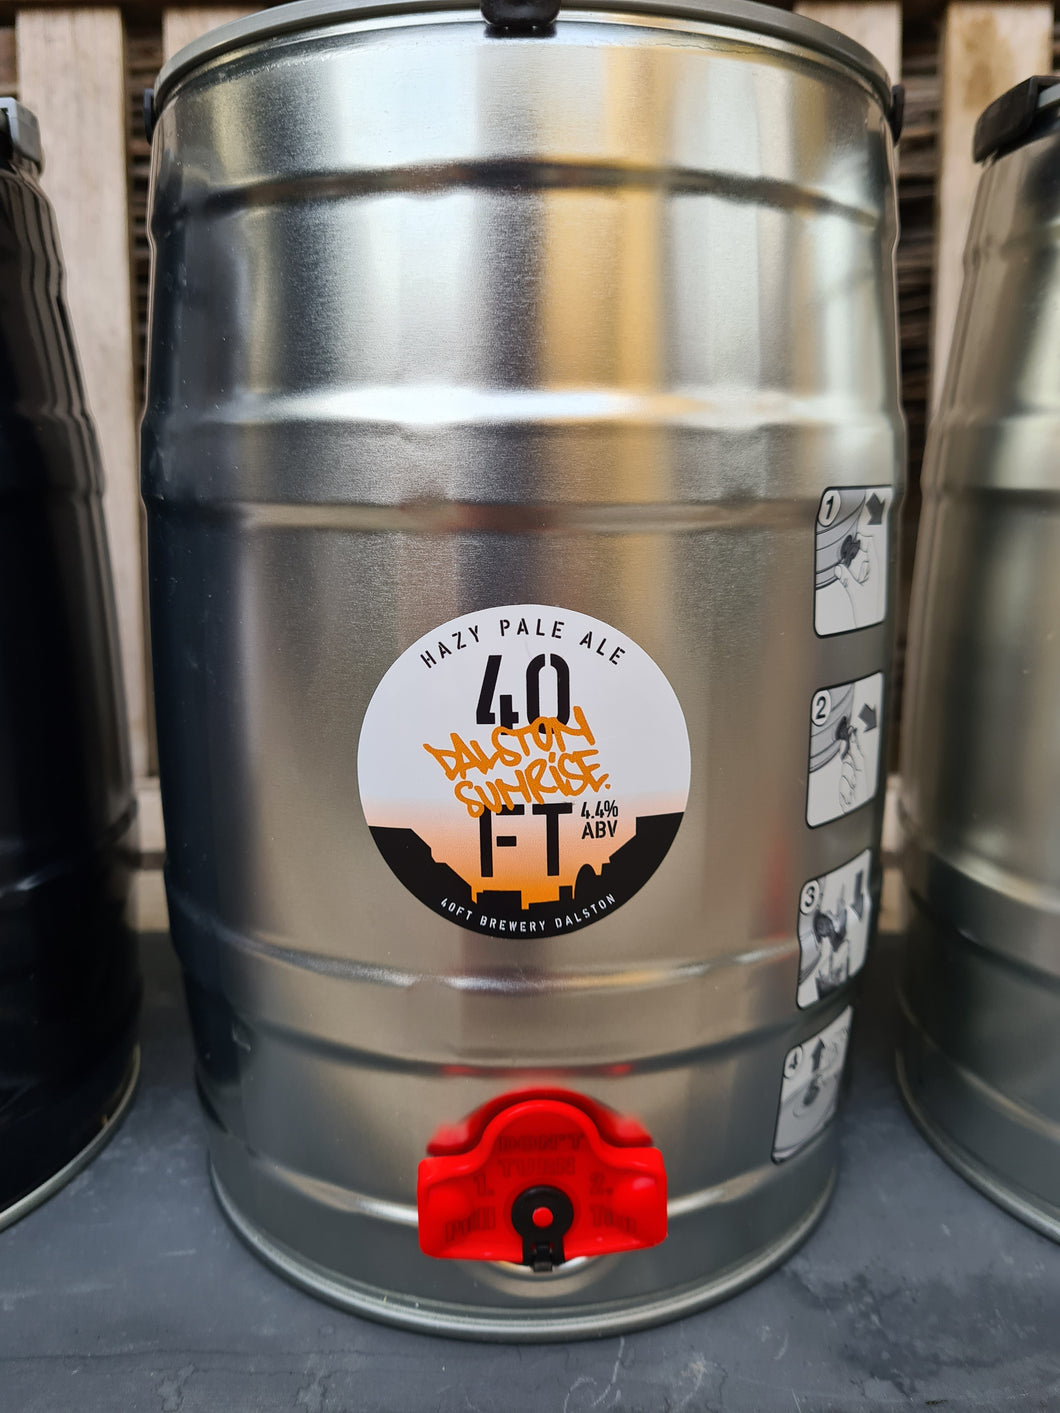 40FT - Dalston Sunrise Mini-Keg - 4.4% ABV (5Ltr)